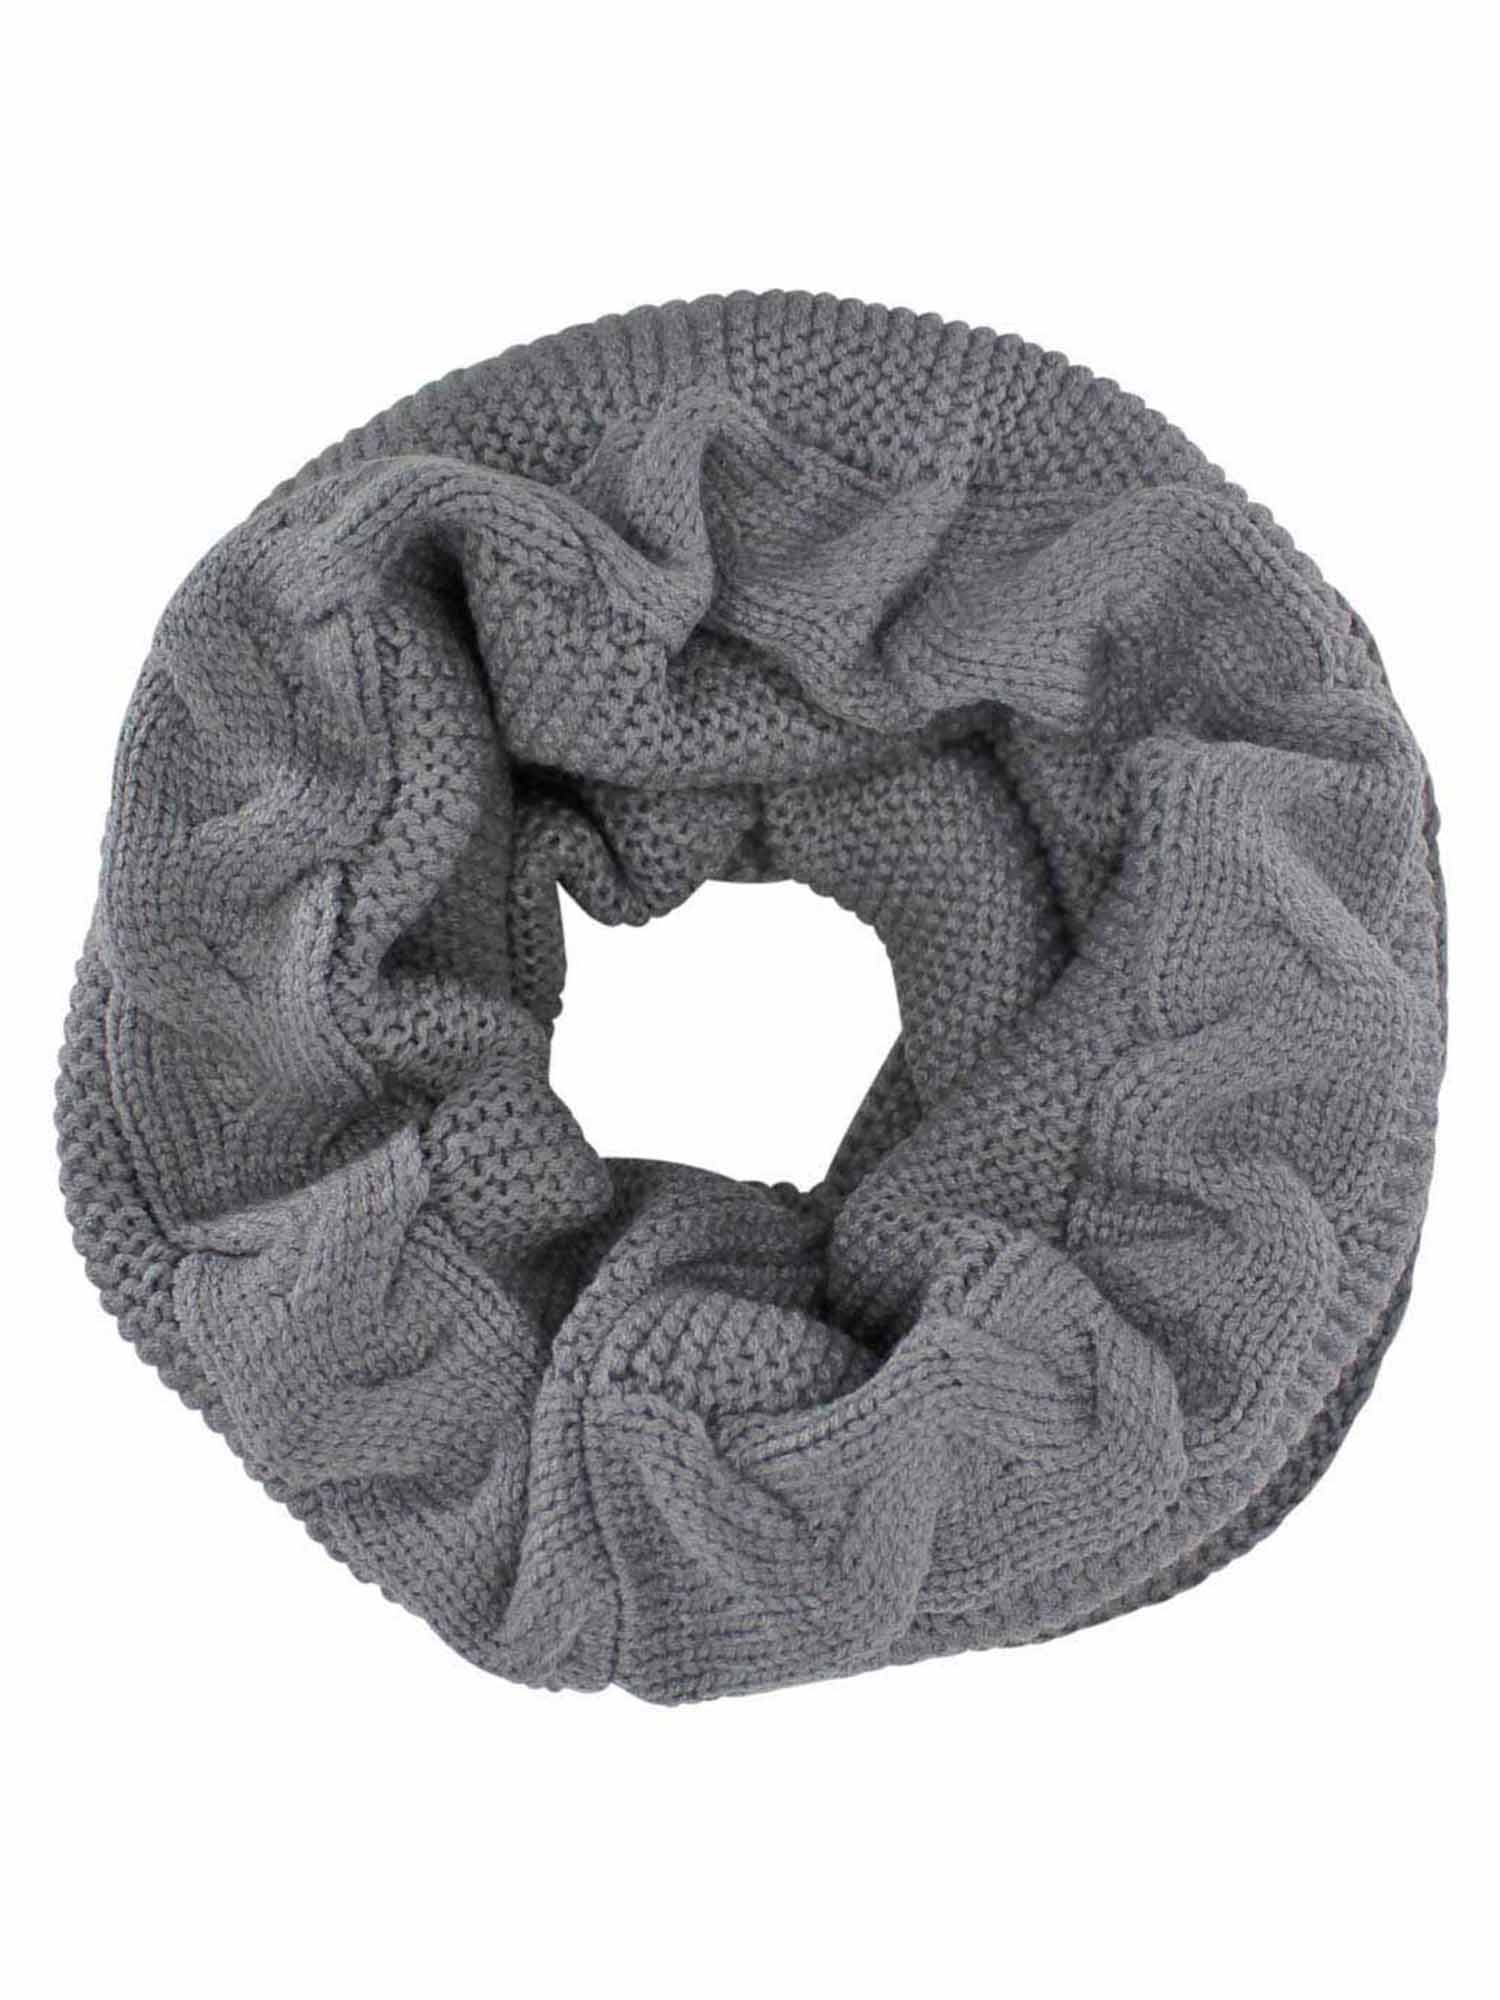 Chunky Cable Knit Winter Infinity Scarf – LD